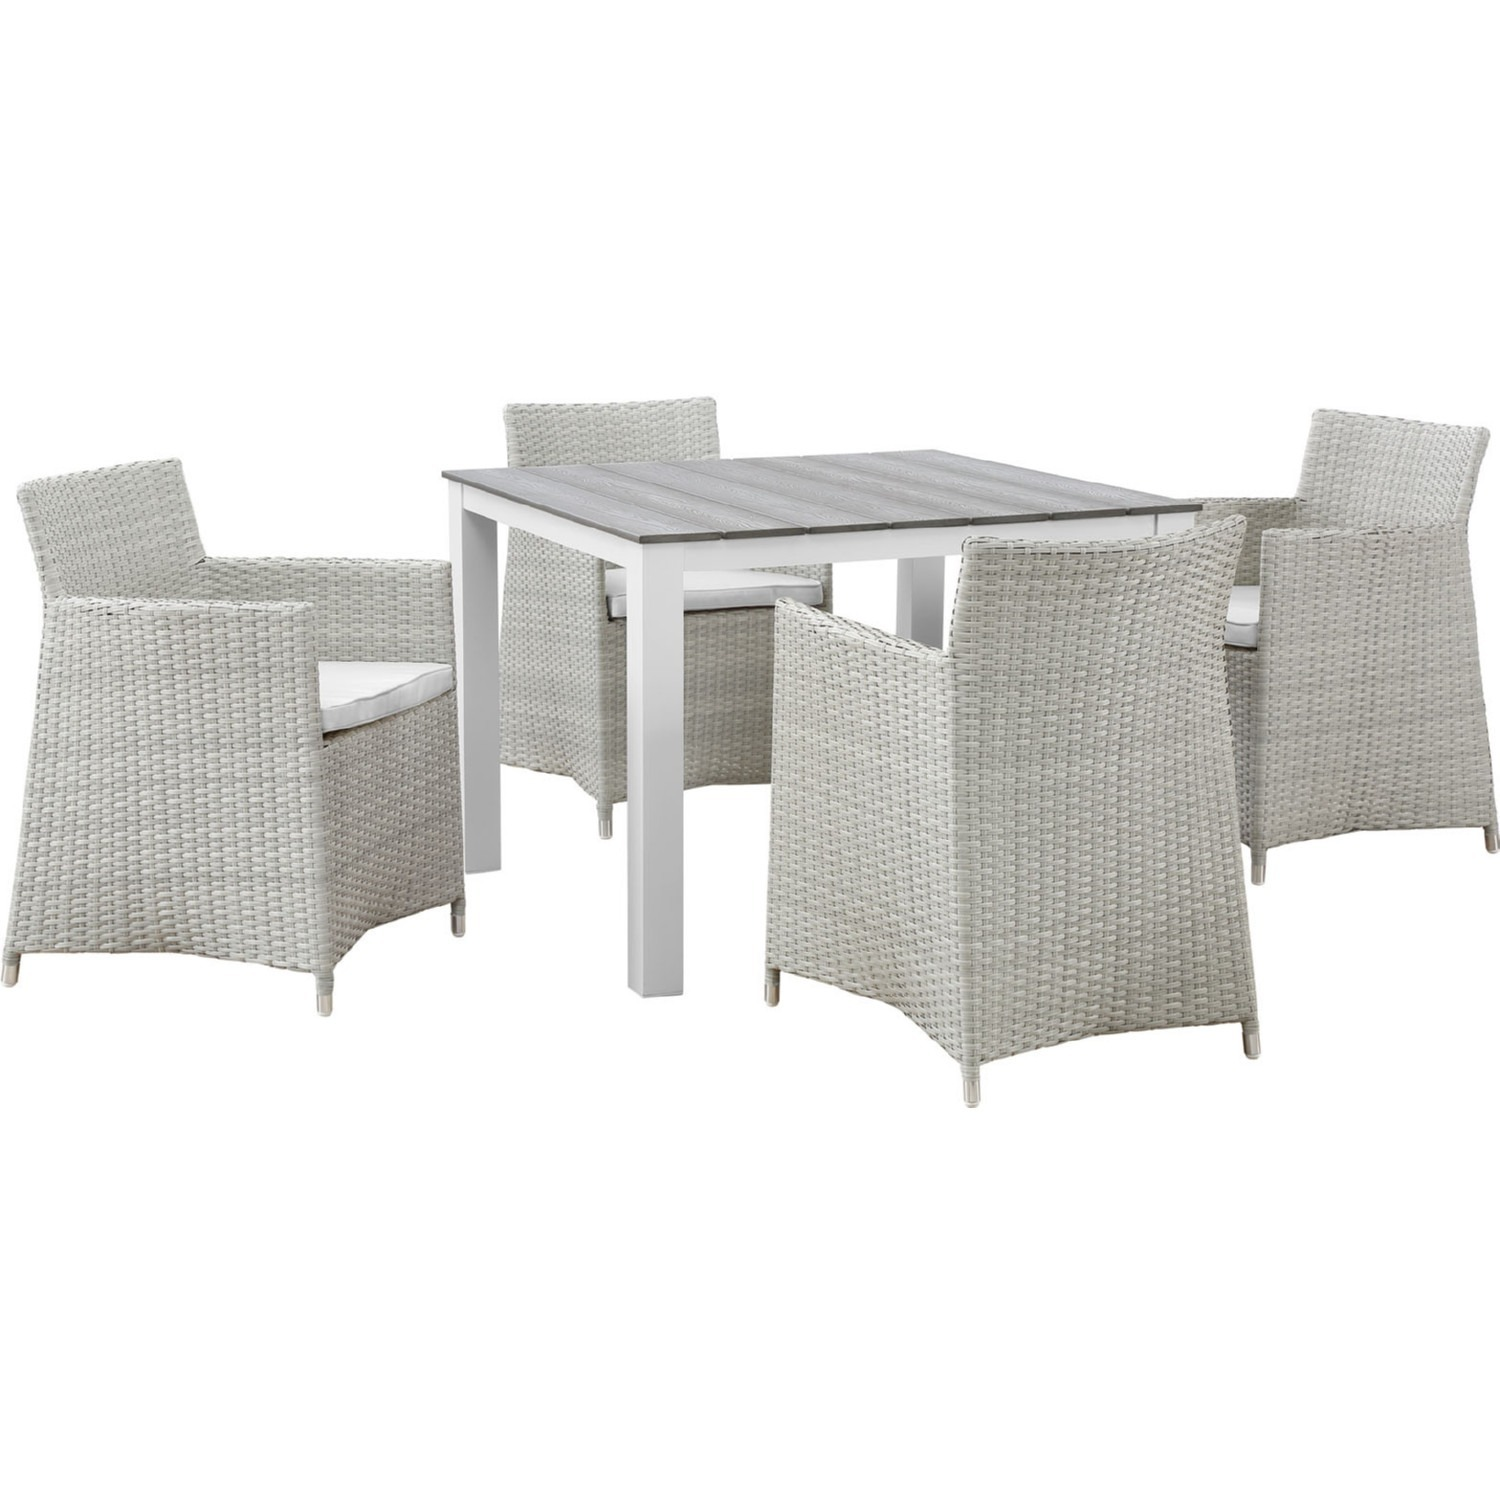 Modern 5-Piece Dining Set In Gray Rattan Weave - image-0